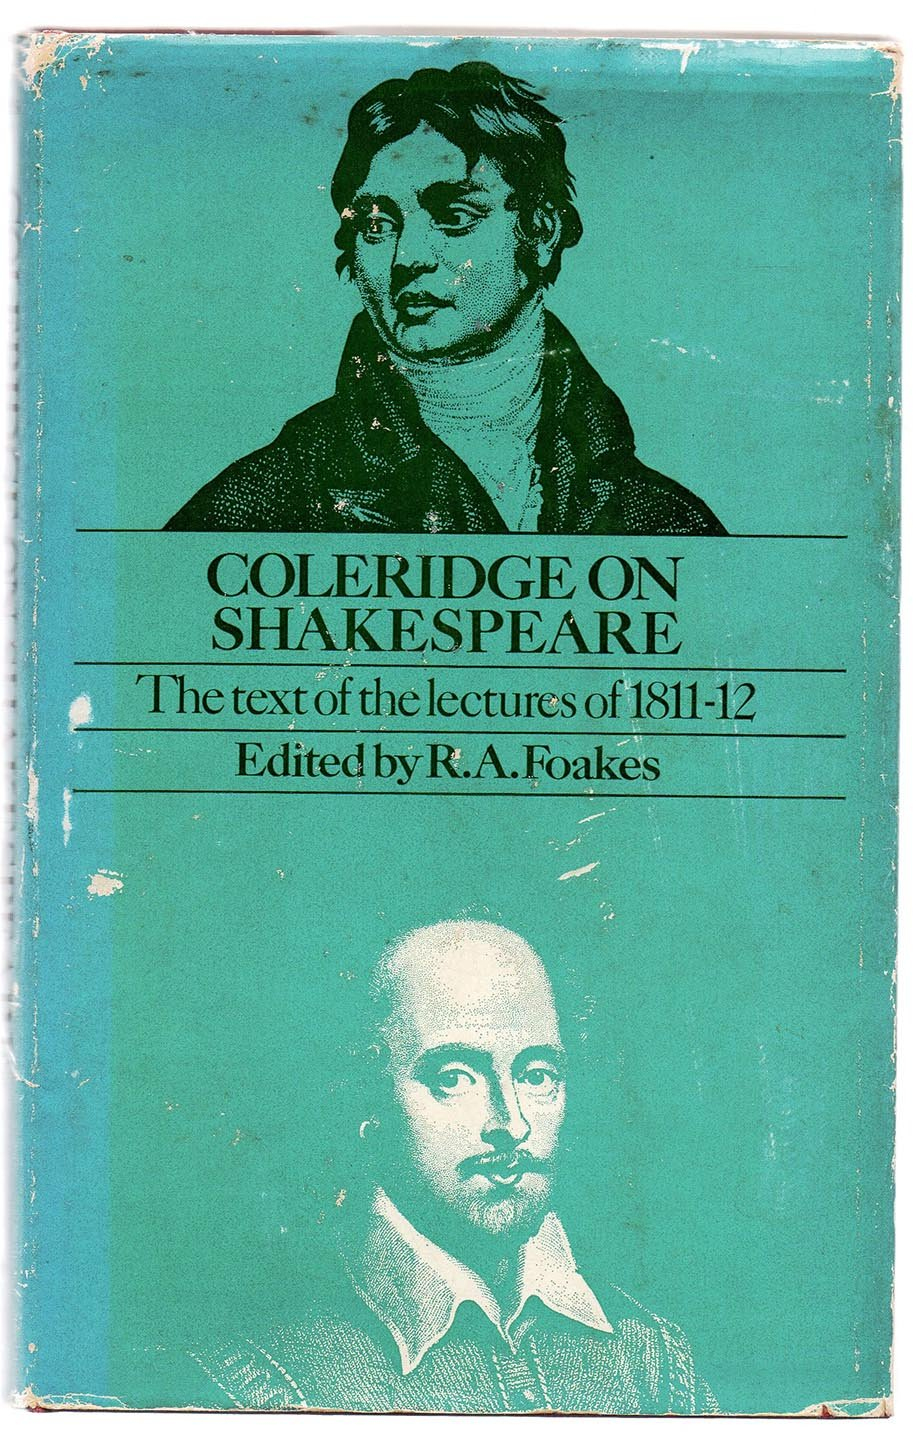 Coleridge on Shakespeare: The text of the lectures of 1811-12